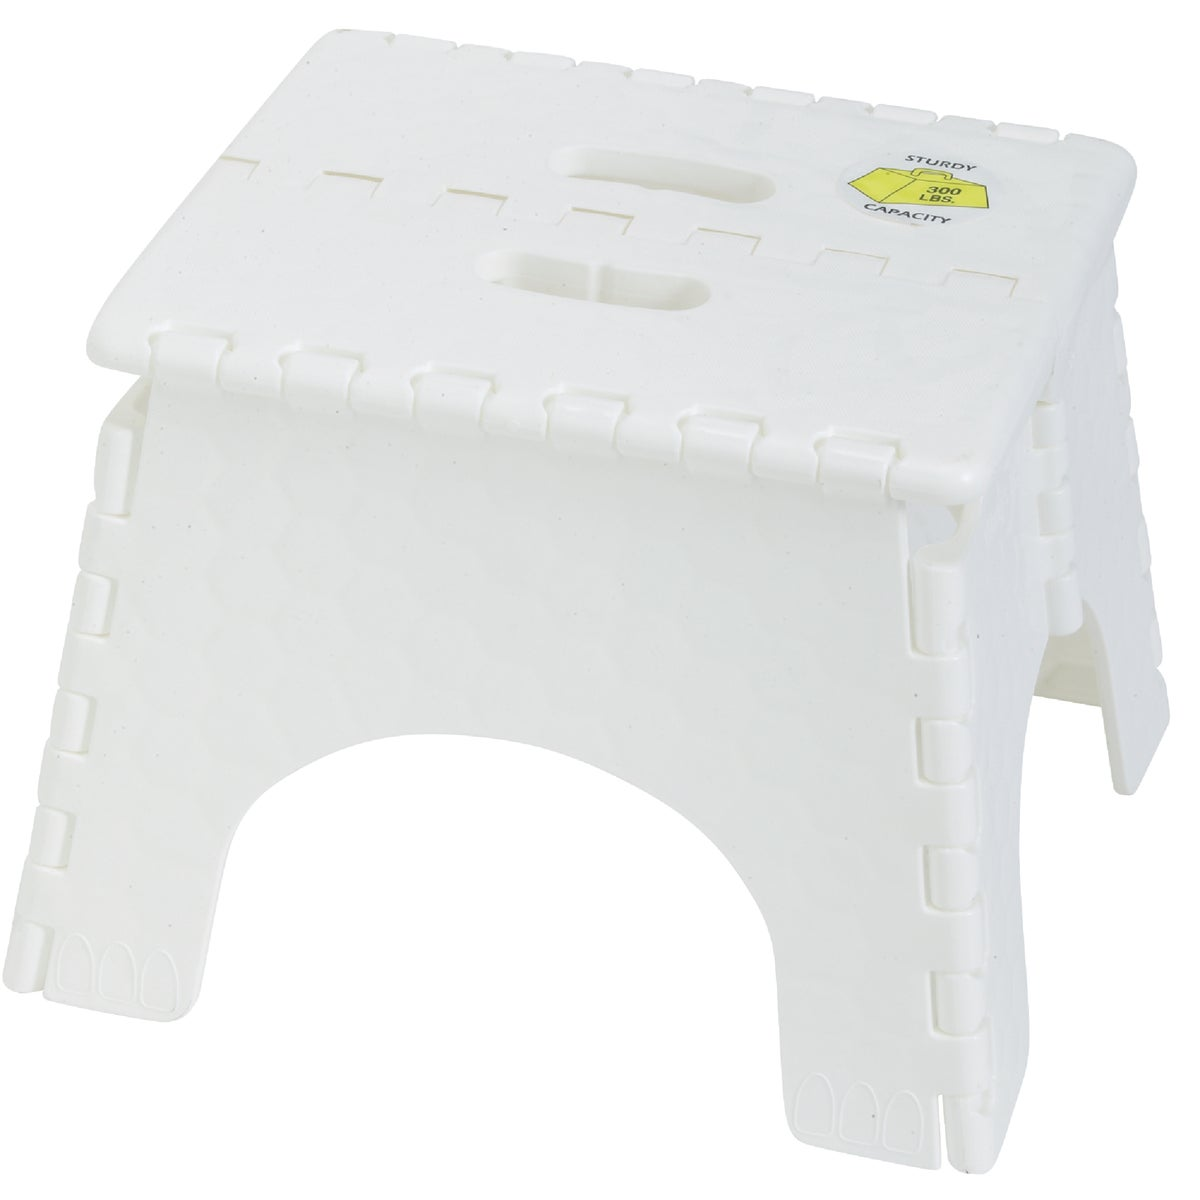 FOLDING STEP STOOL - 101-6 by B & R Plastics Inc